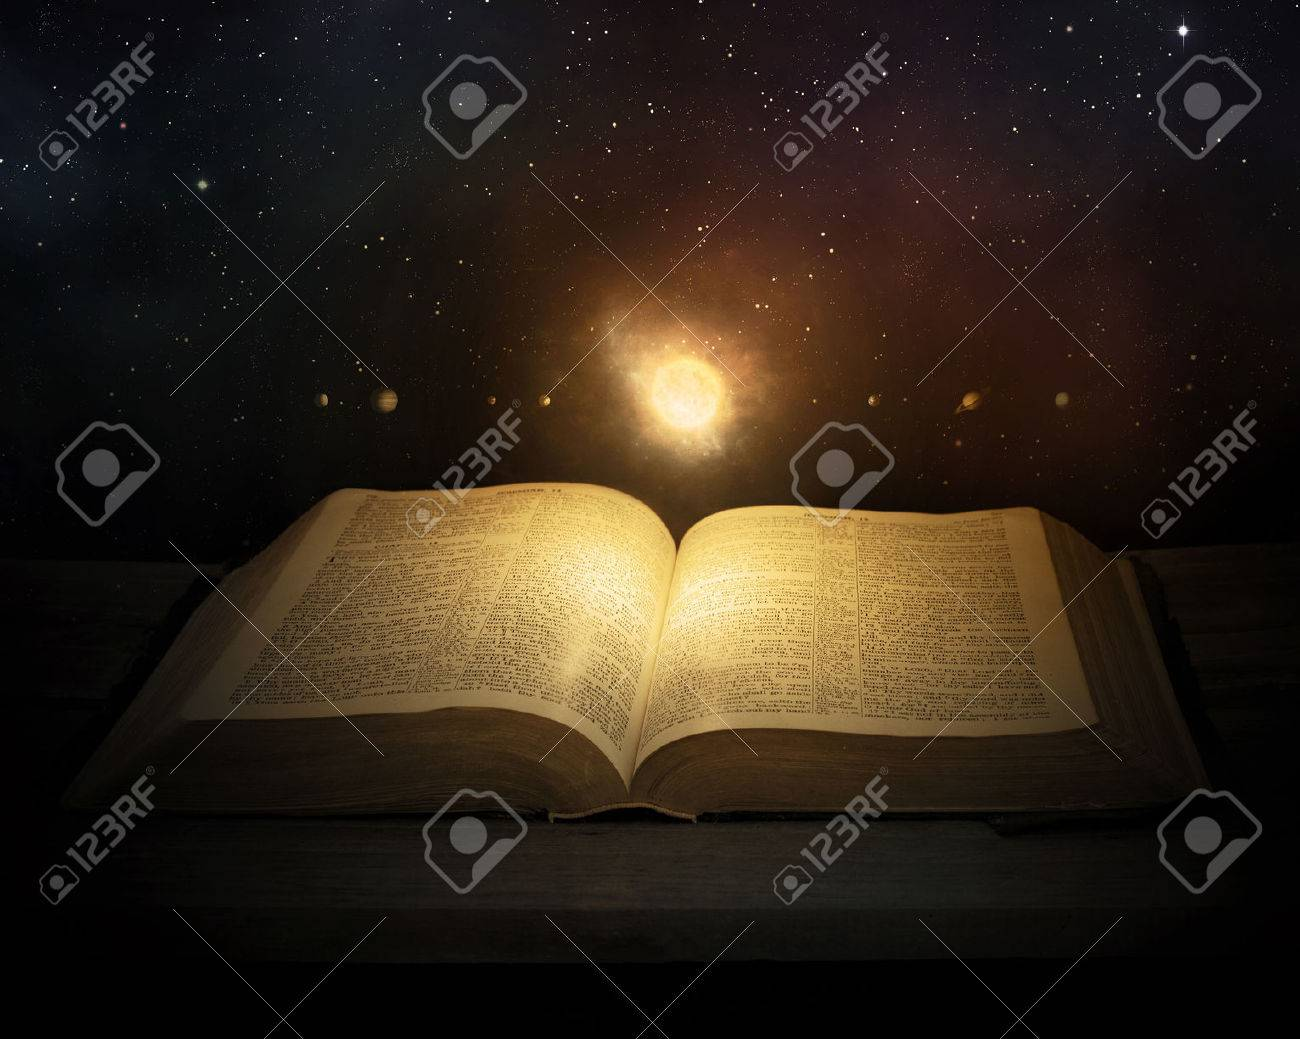 the solar system and stars floating above the pages of the bible